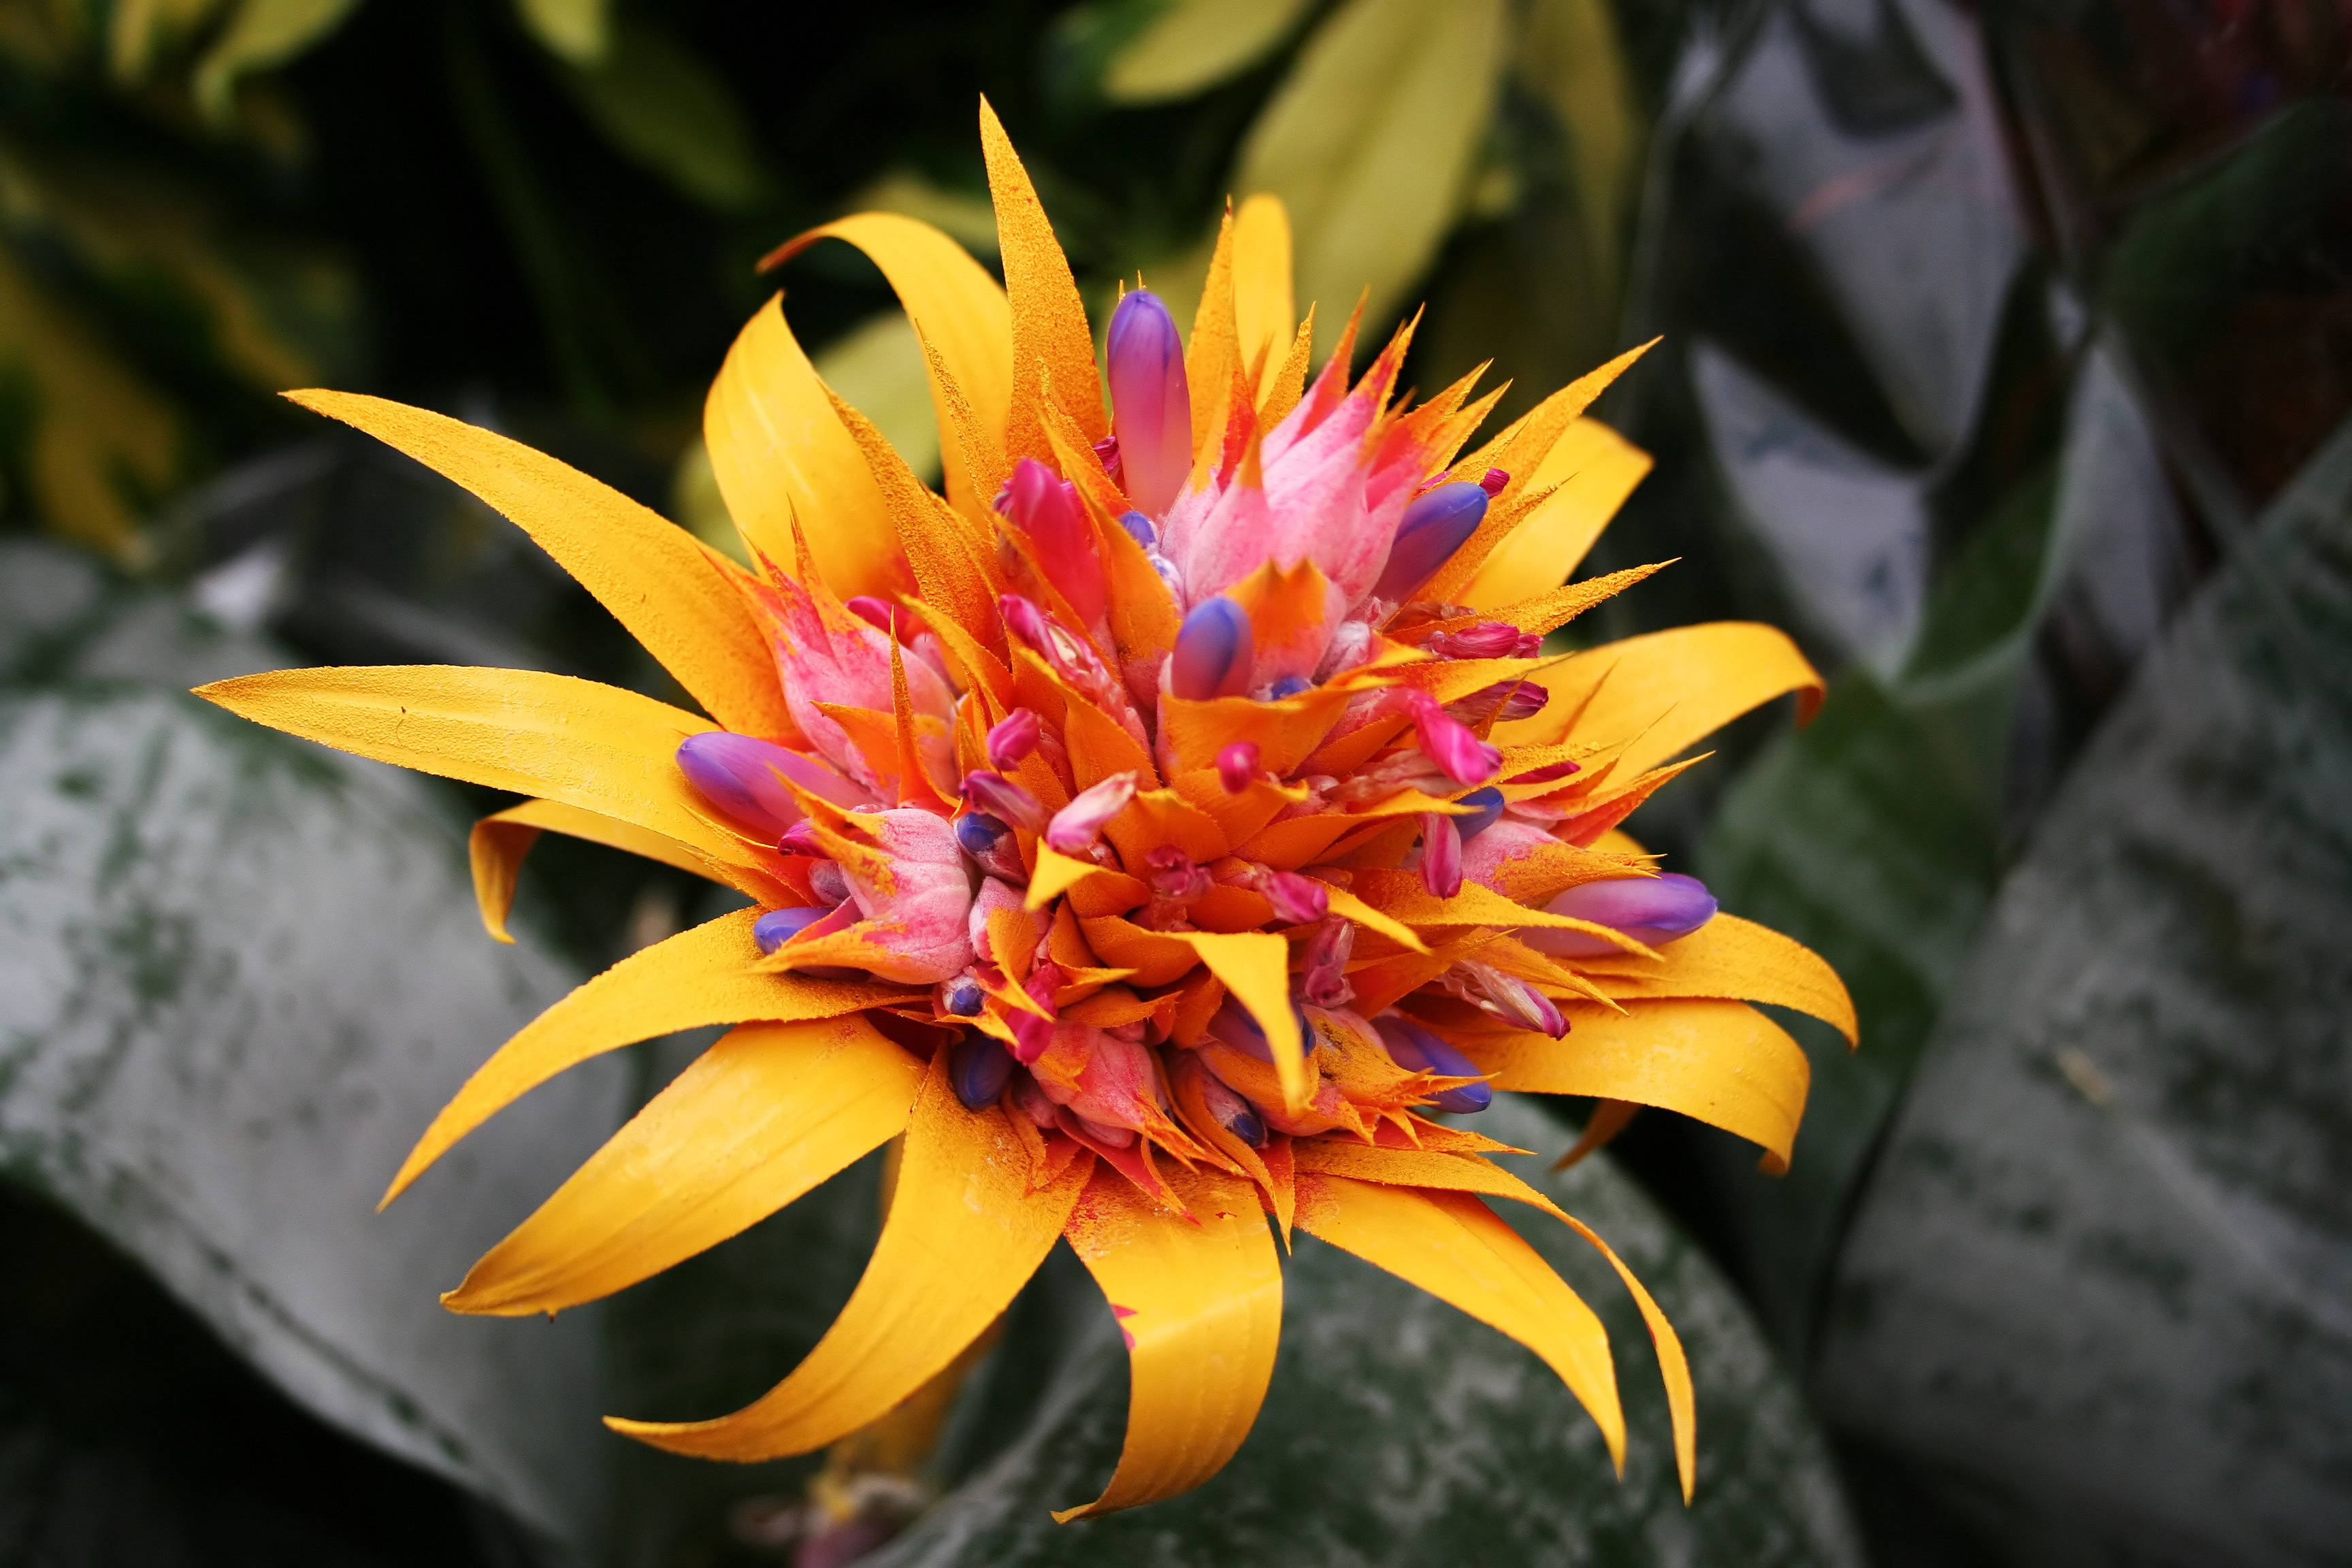 Flowers For Tropical Wallpaper